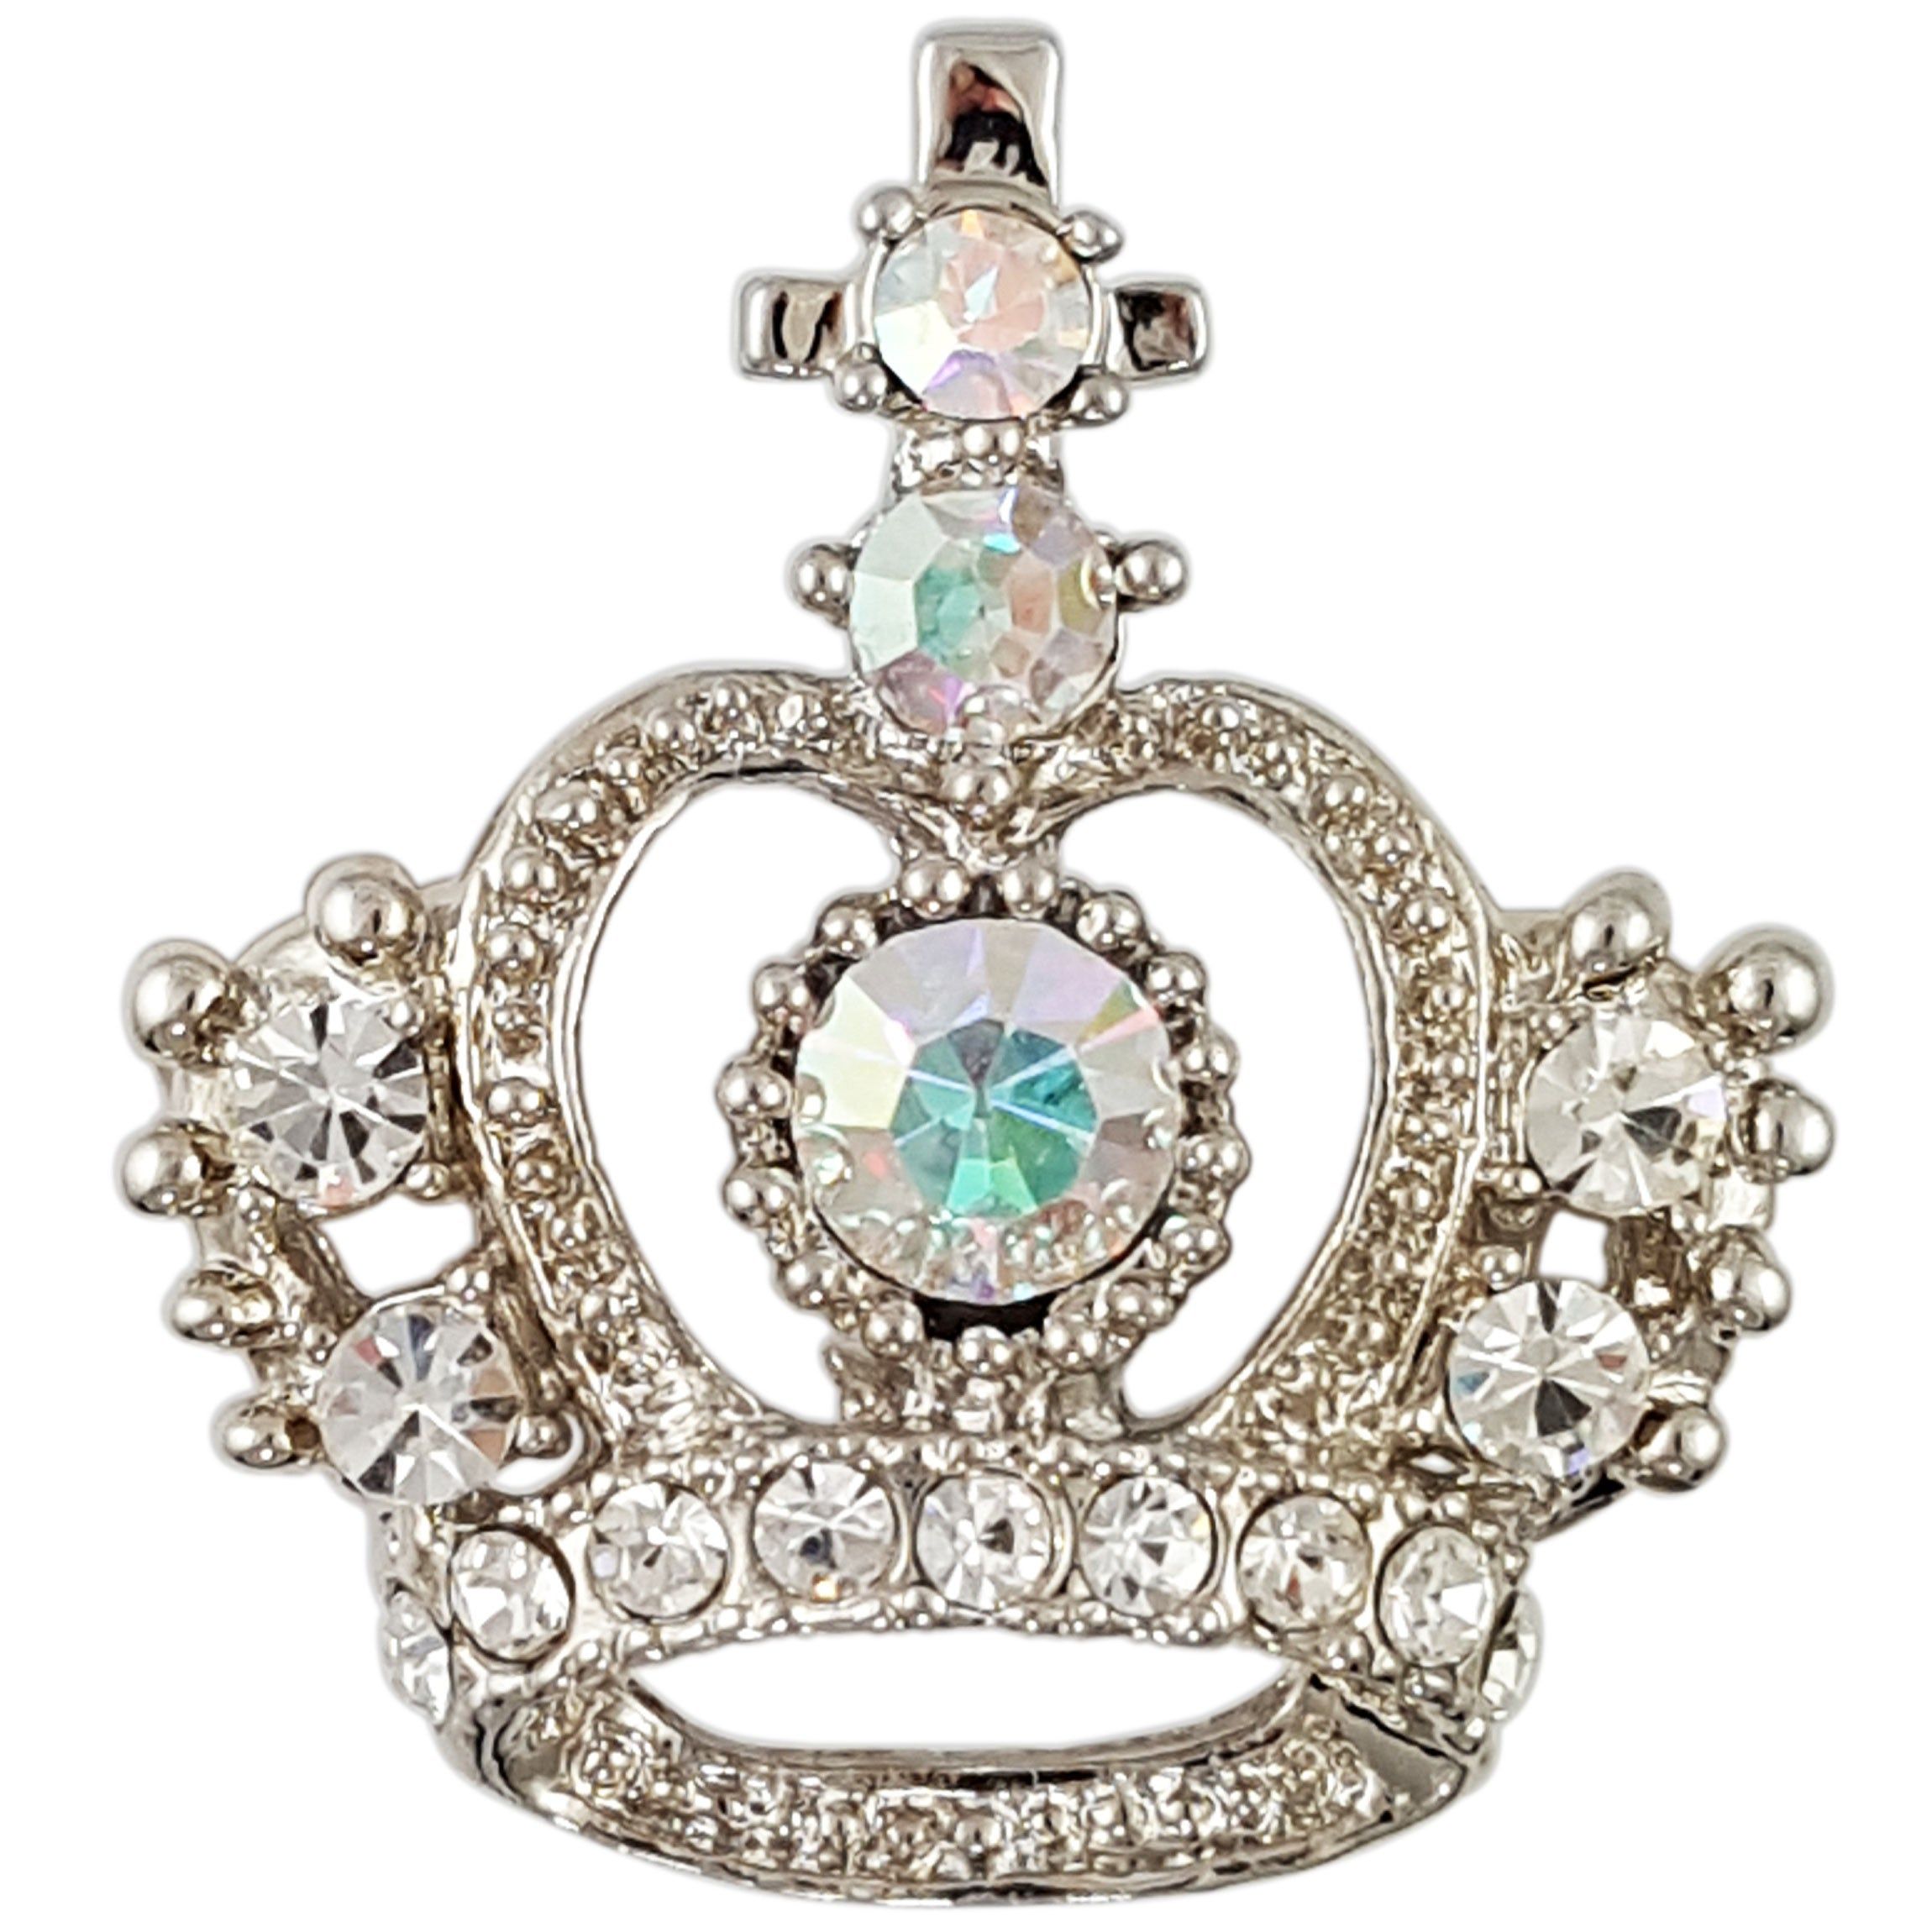 BB909 CROWN BROOCH